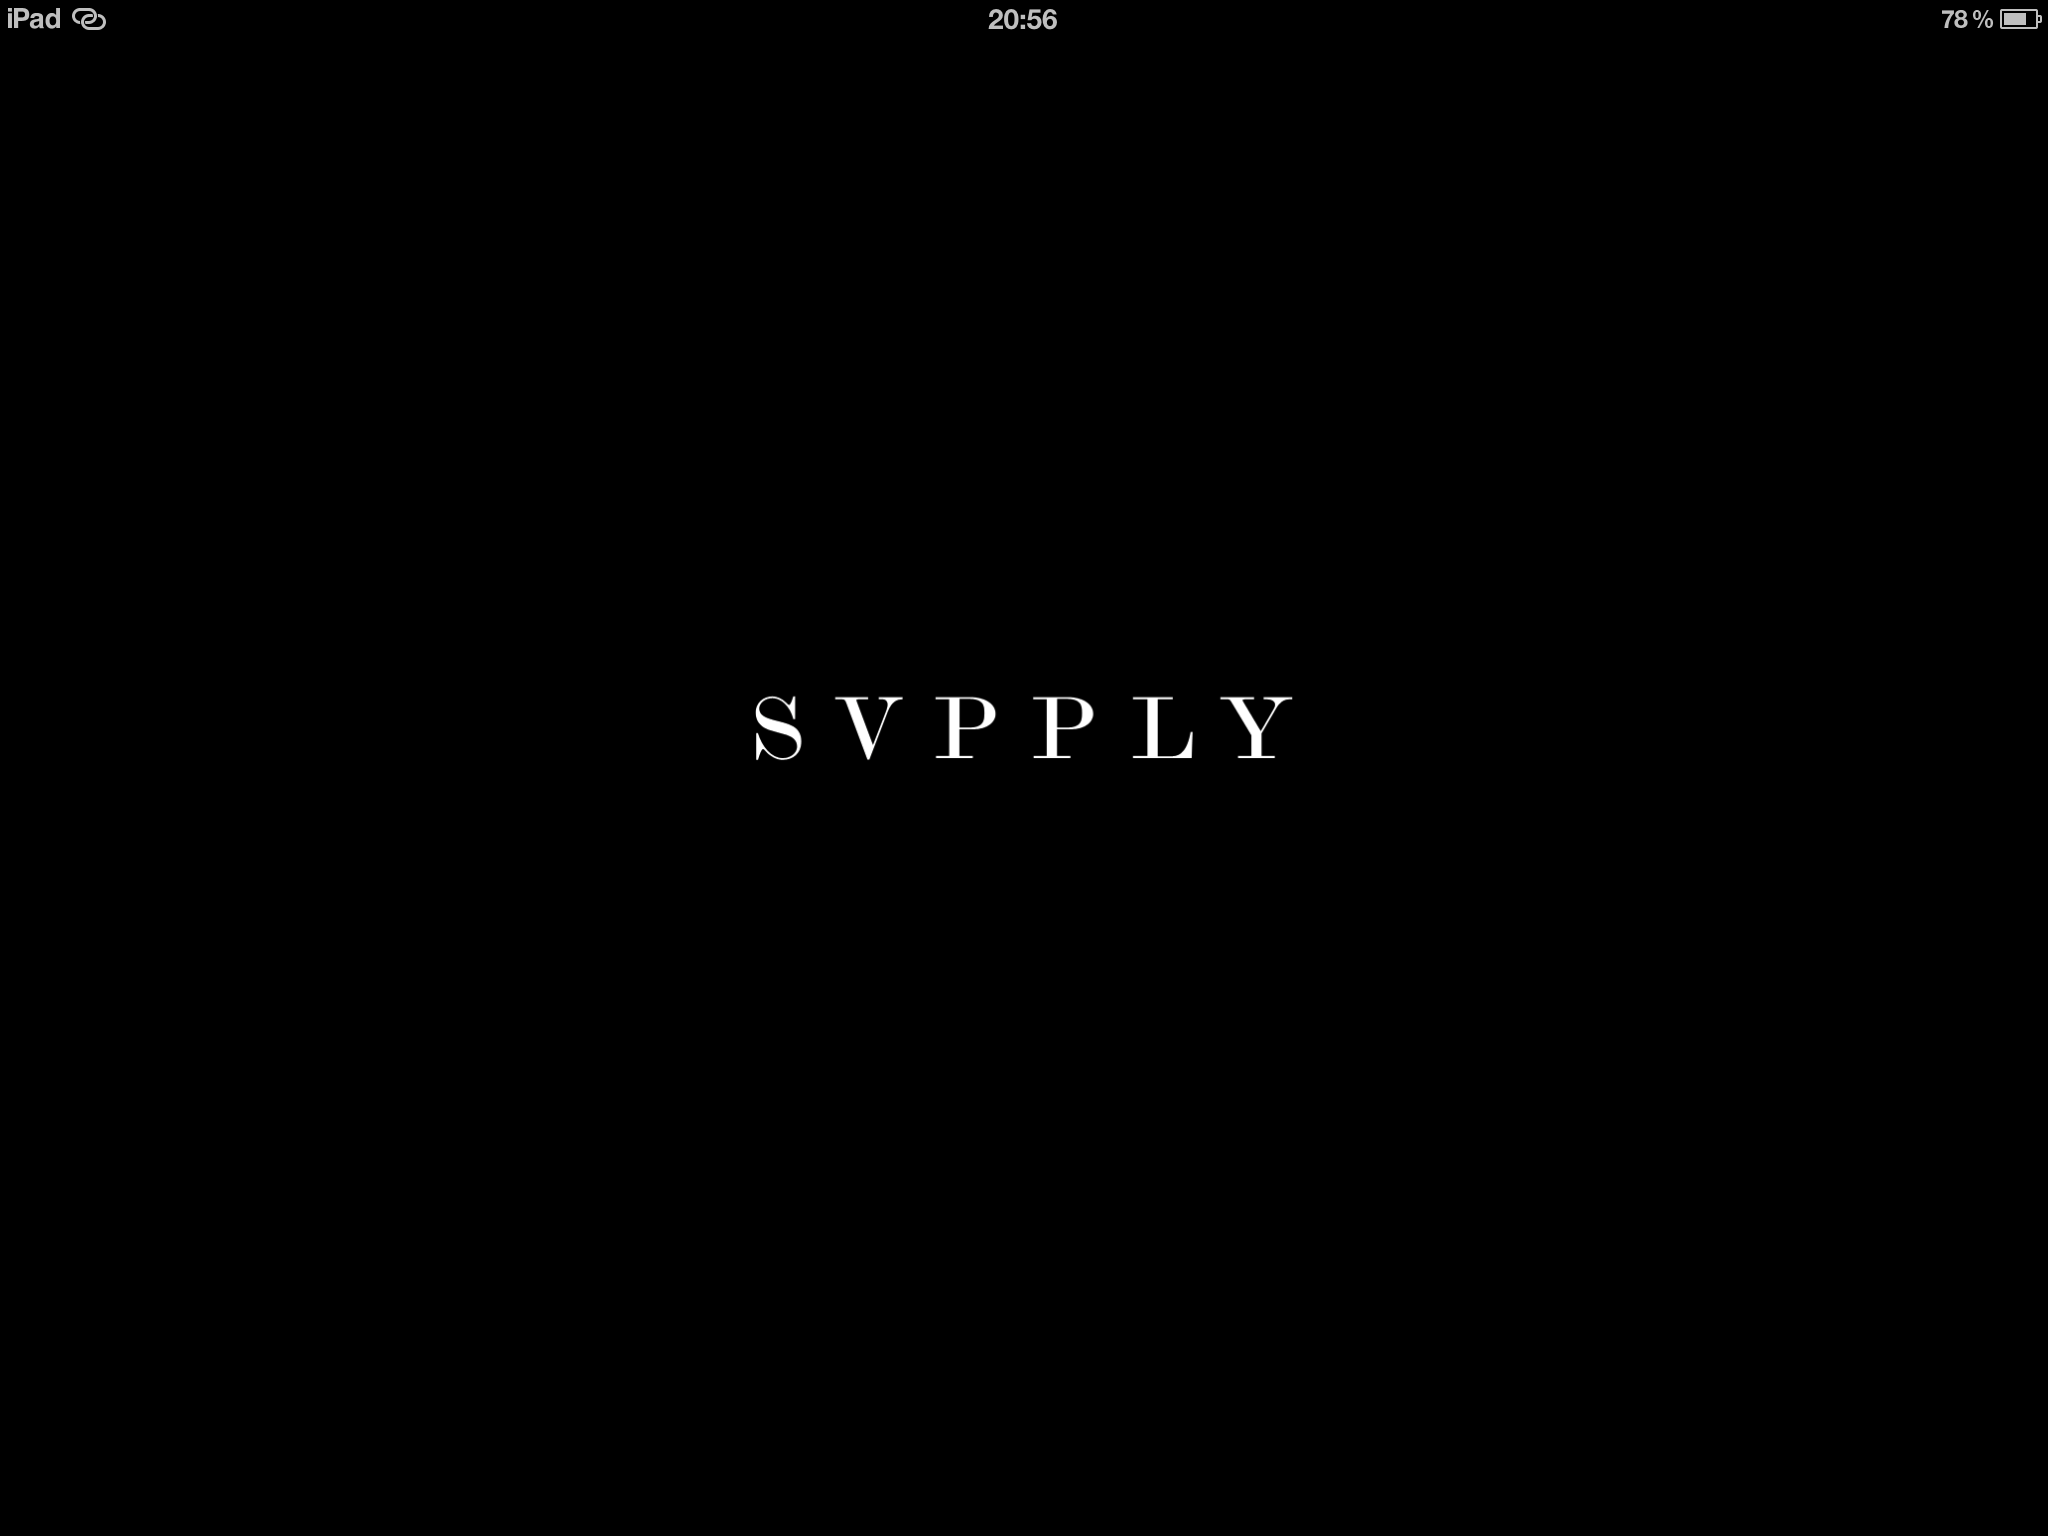 Social Commerce Site Svpply Supplies iPad Support To Its Recently Released App